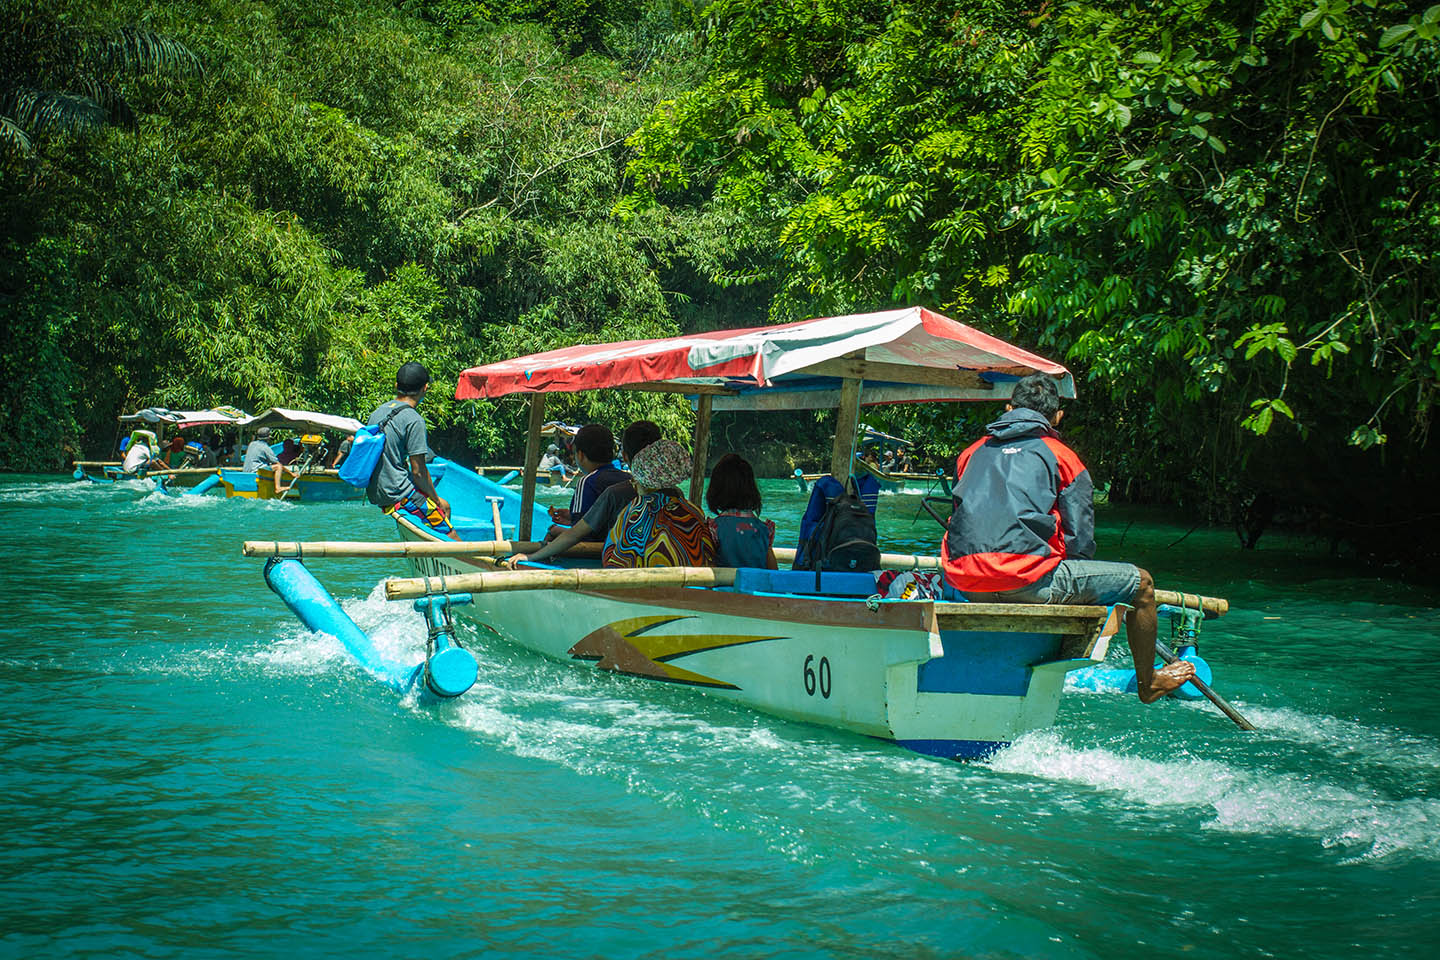 Green Canyon Pangandaran Java Indonesia River boat tour / Indonesien Fluss Bootstour